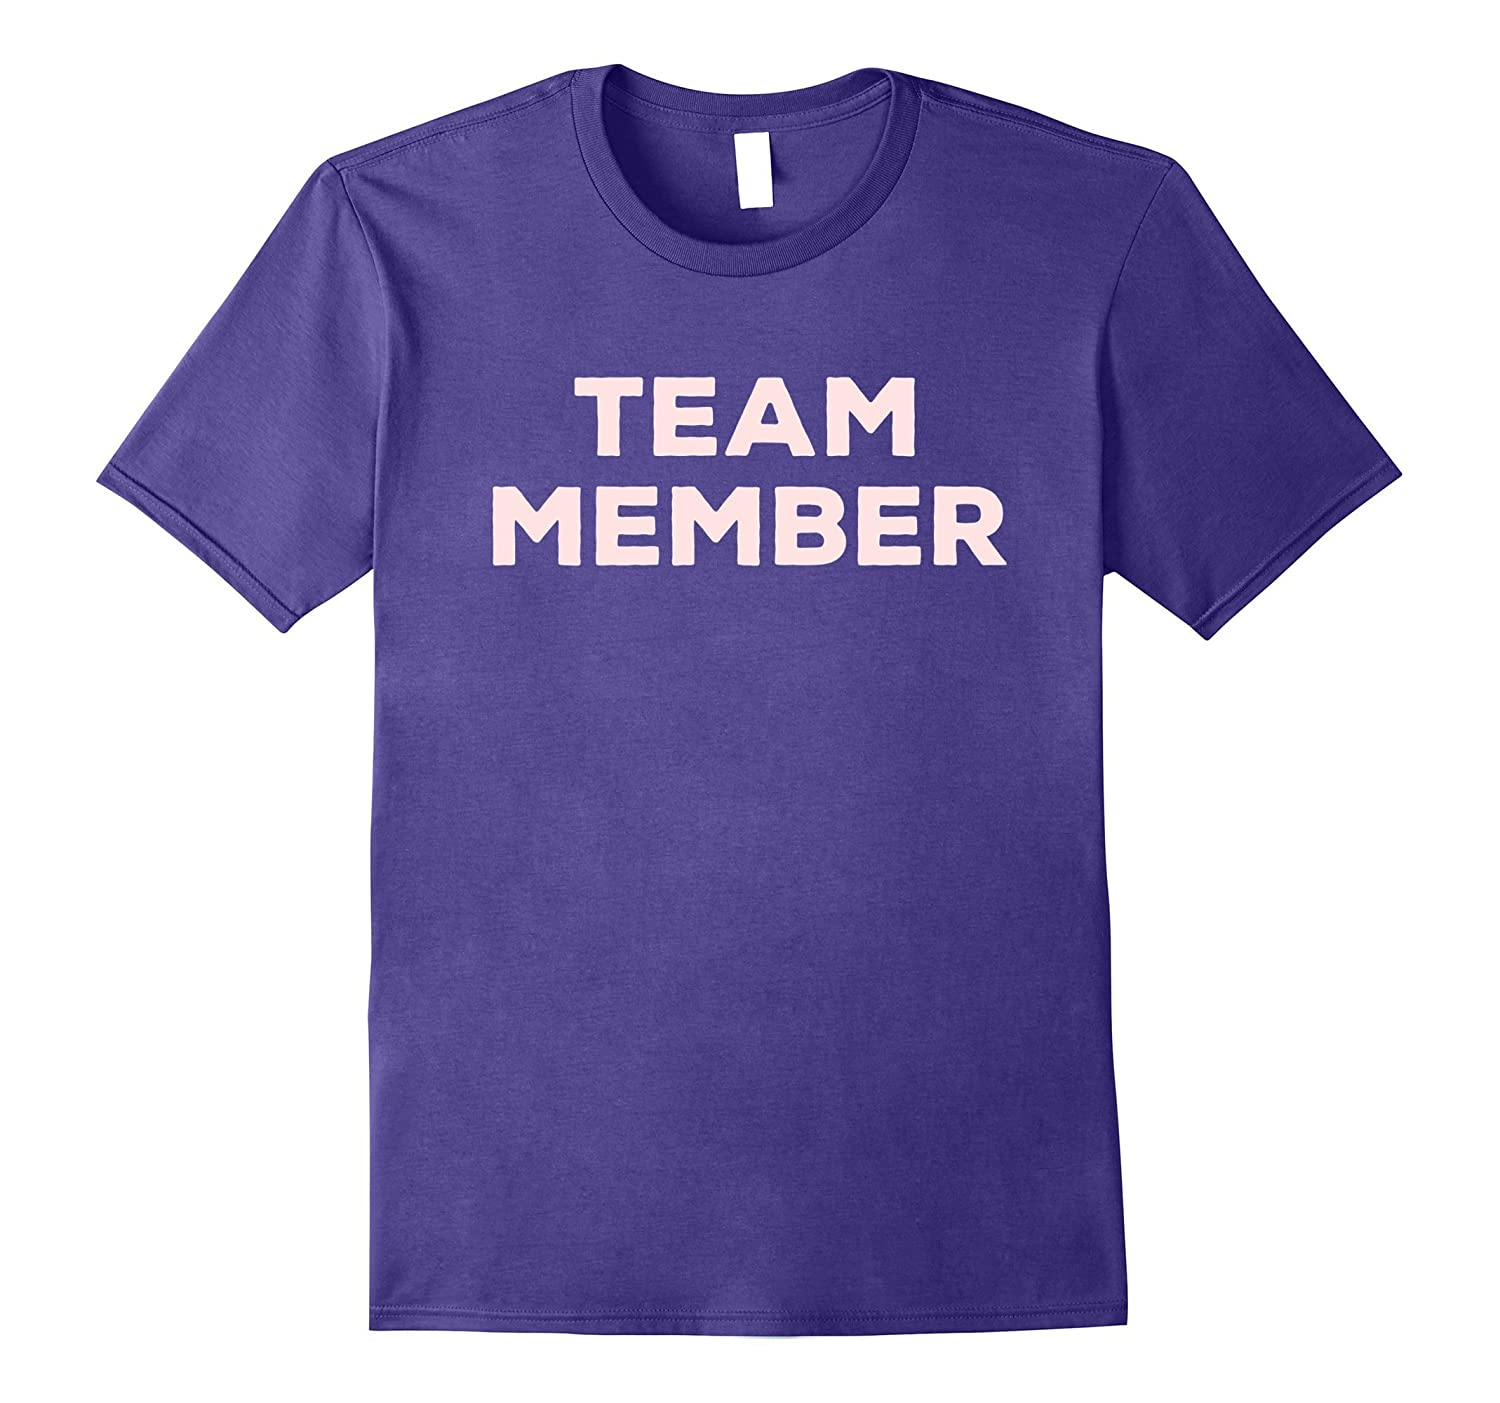 TEAM MEMBER Business Event Staff T-Shirt Men Women Kids-PL